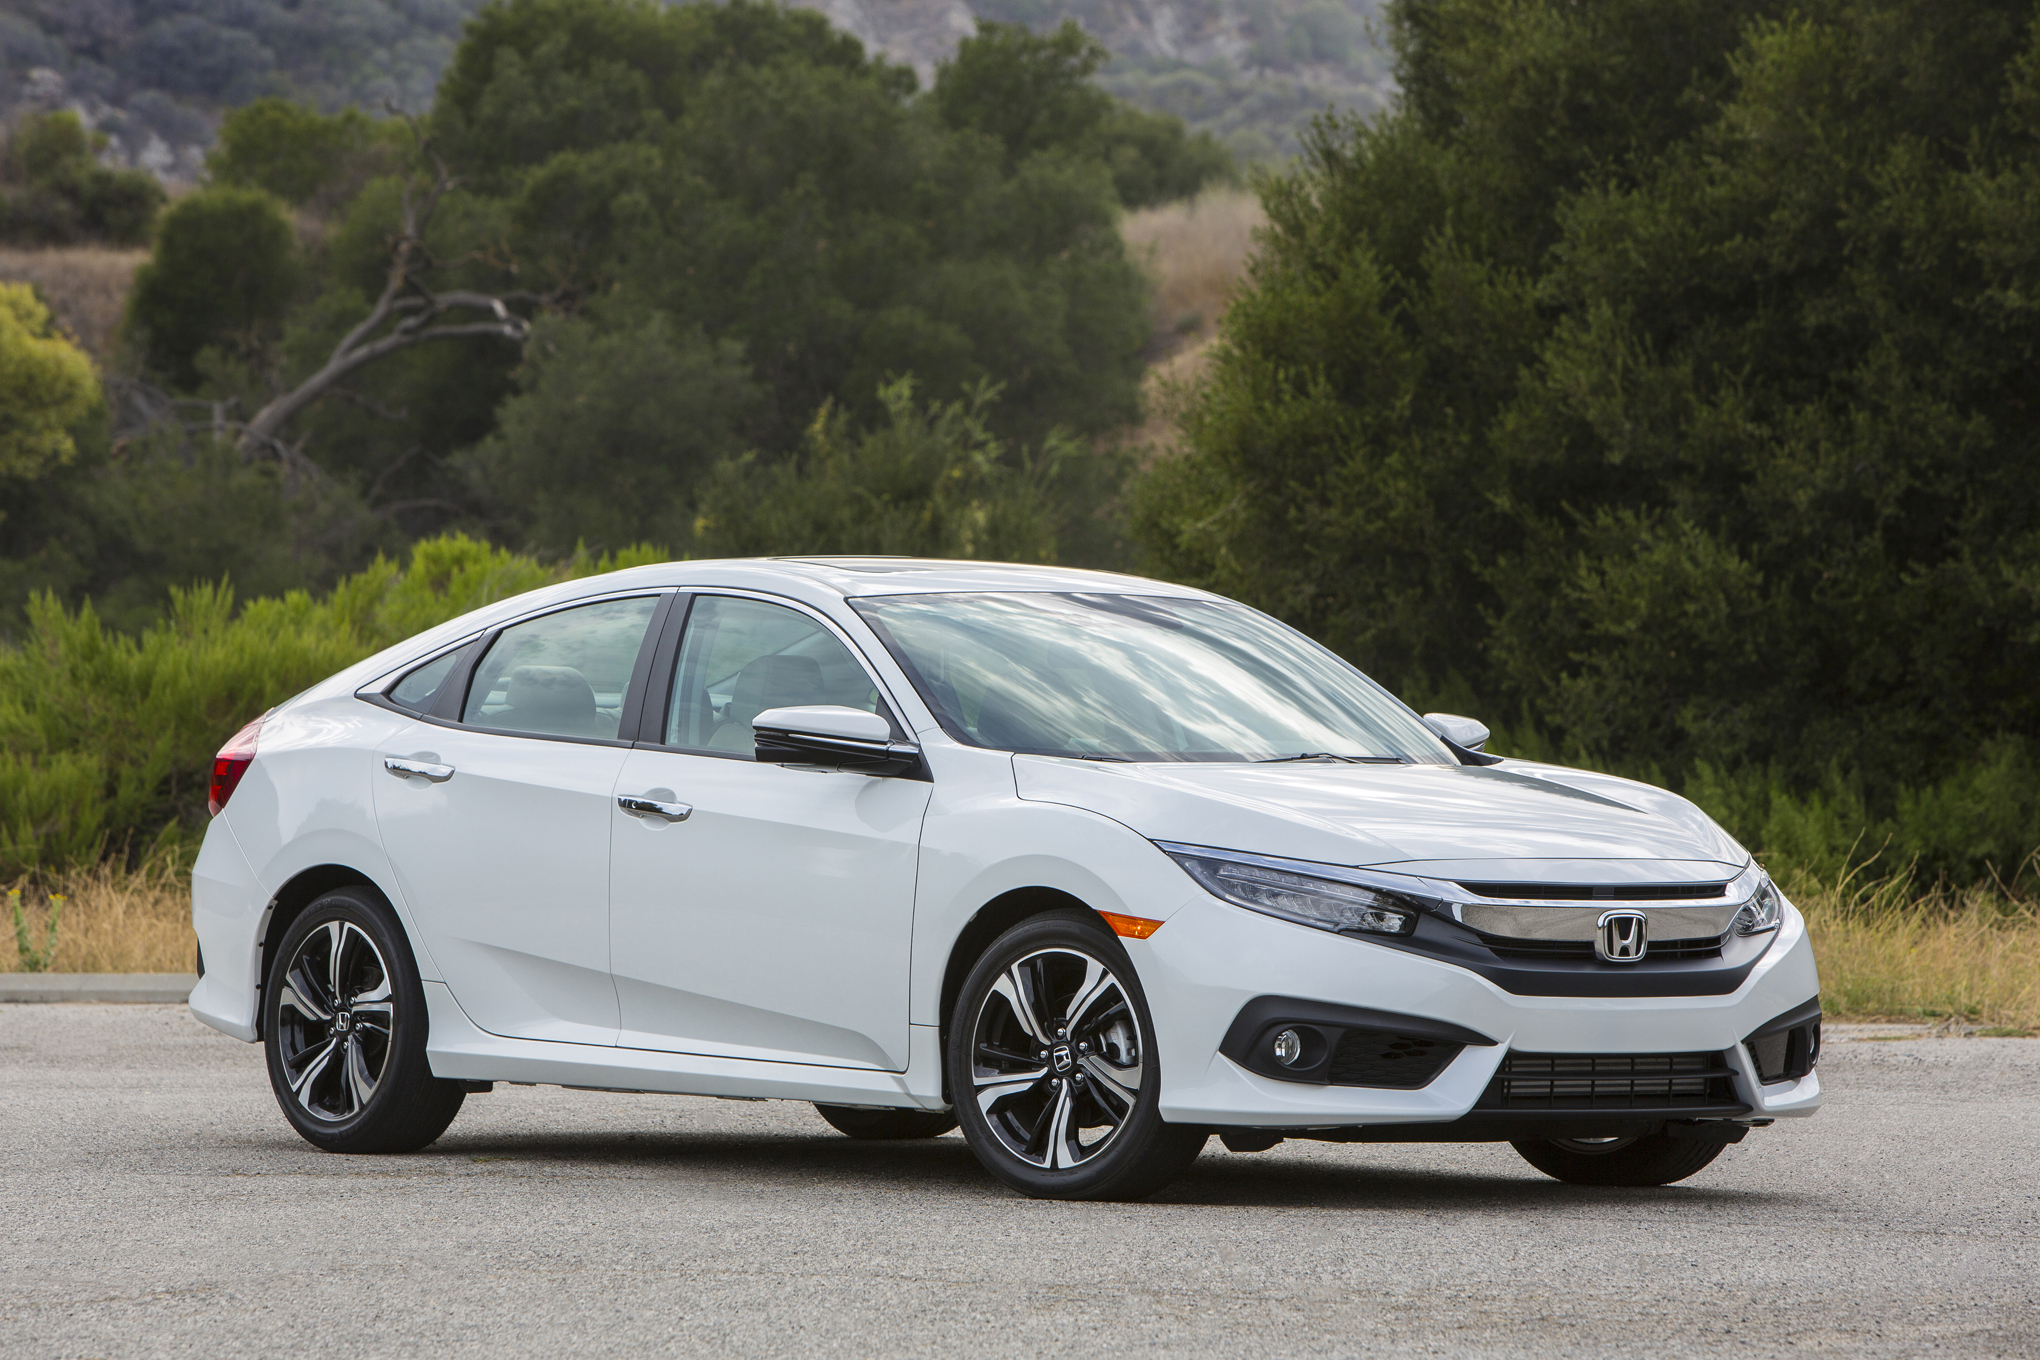 2016 Honda Civic Touring White (View 10 of 36)